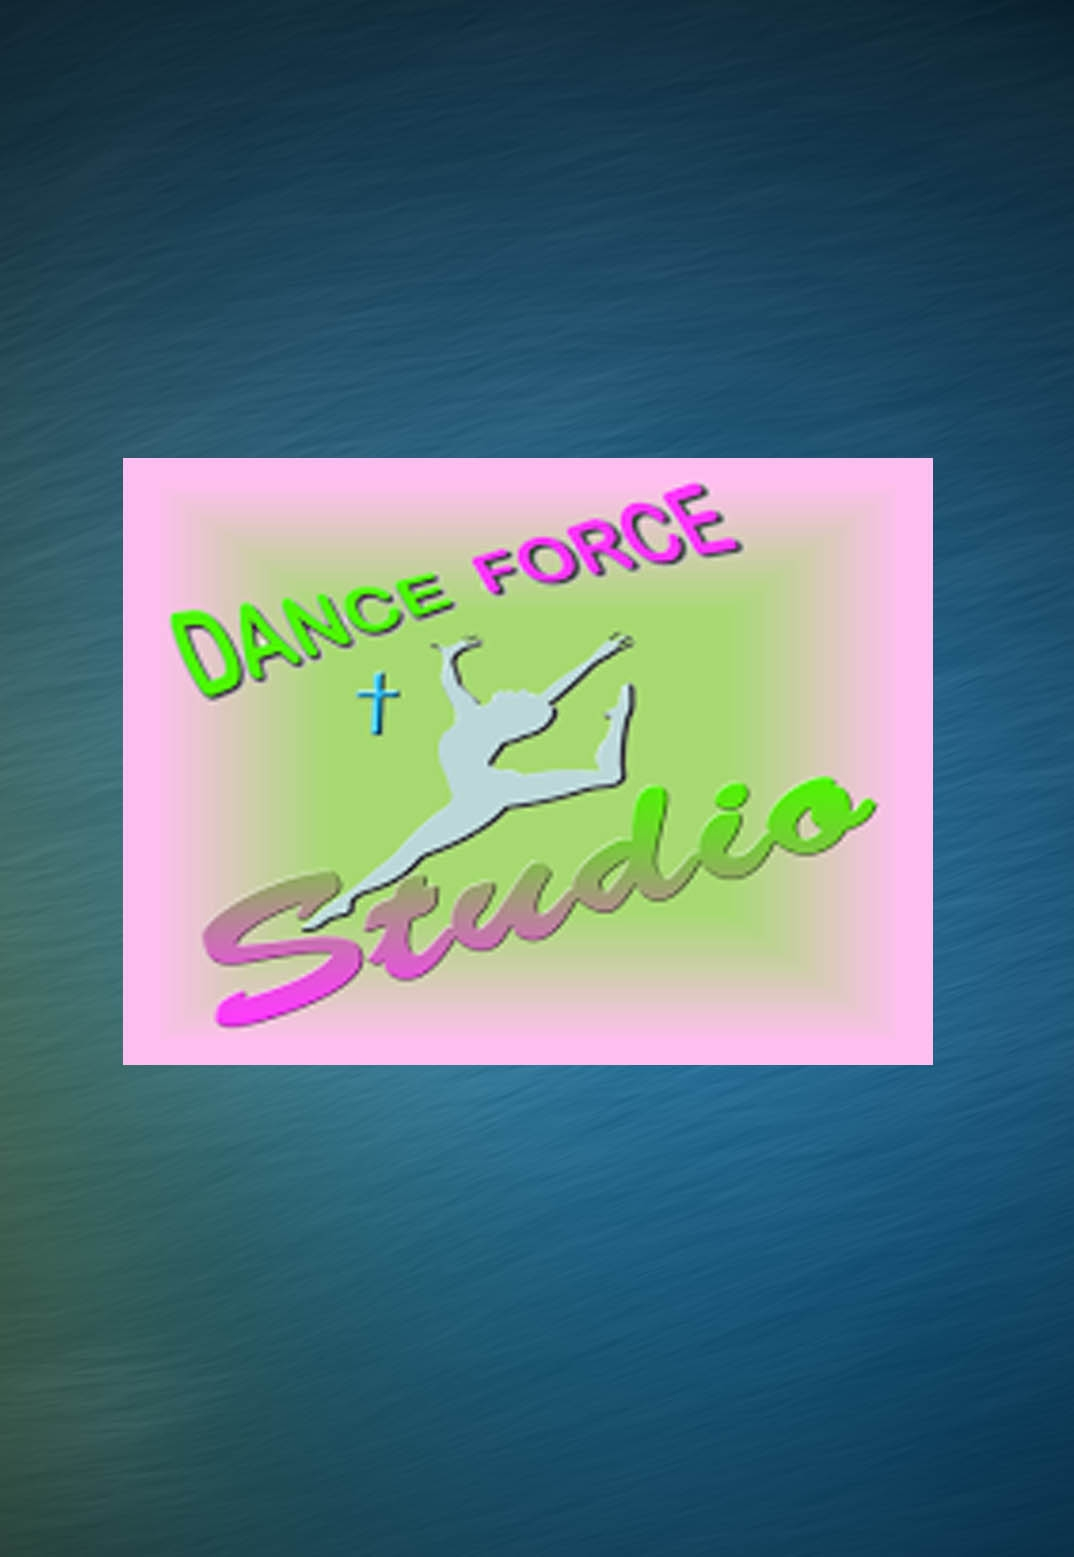 DANCE FORCE STUDIO SATURDAY, MAY 21, 2016 9:30 AM SHOW ONLY